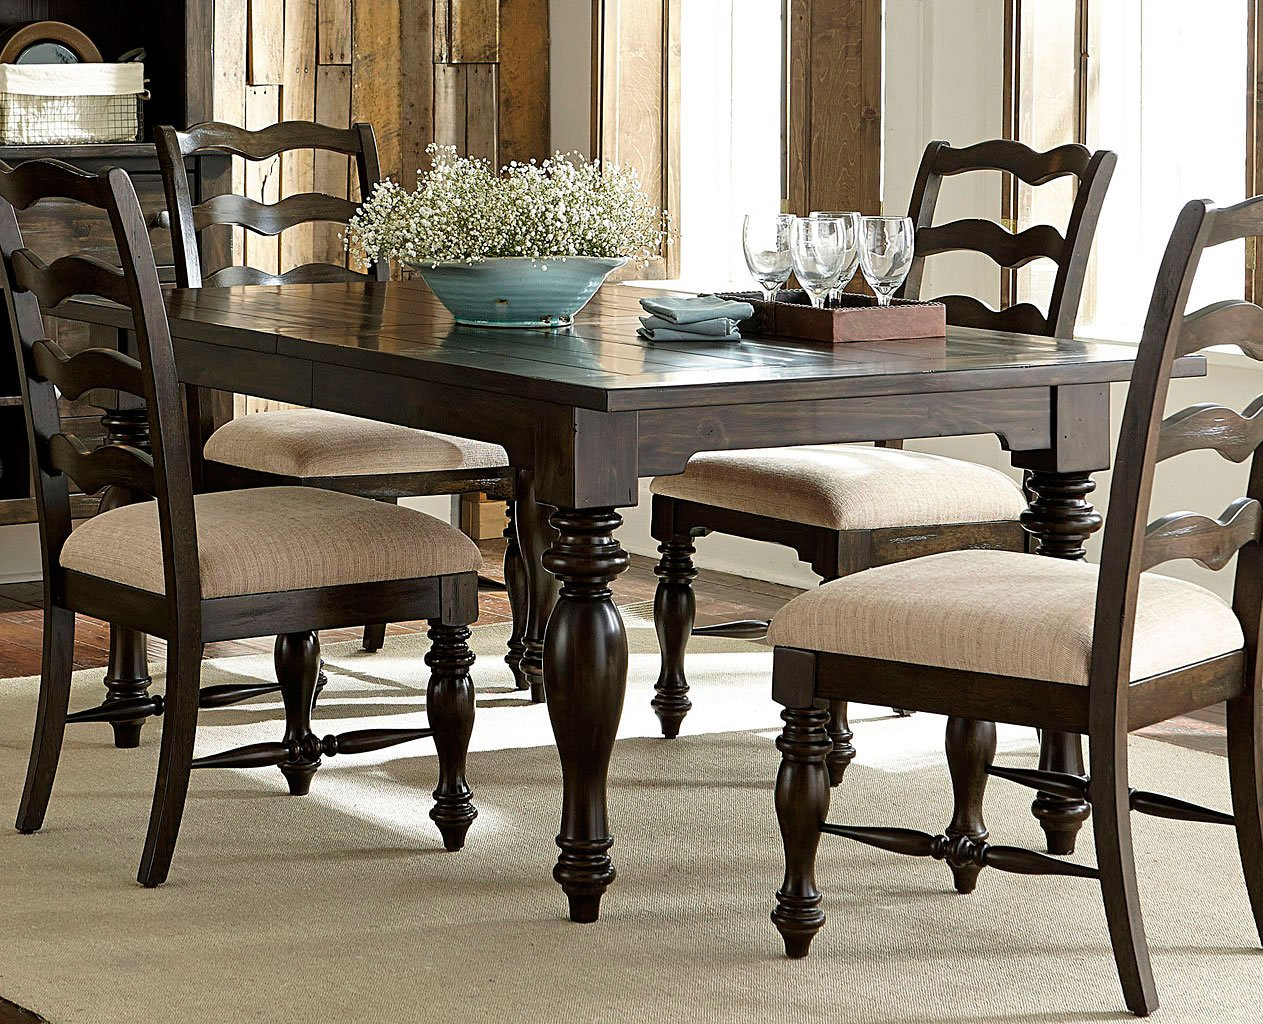 Phenomenal Southern Pines I Dining Table Download Free Architecture Designs Scobabritishbridgeorg